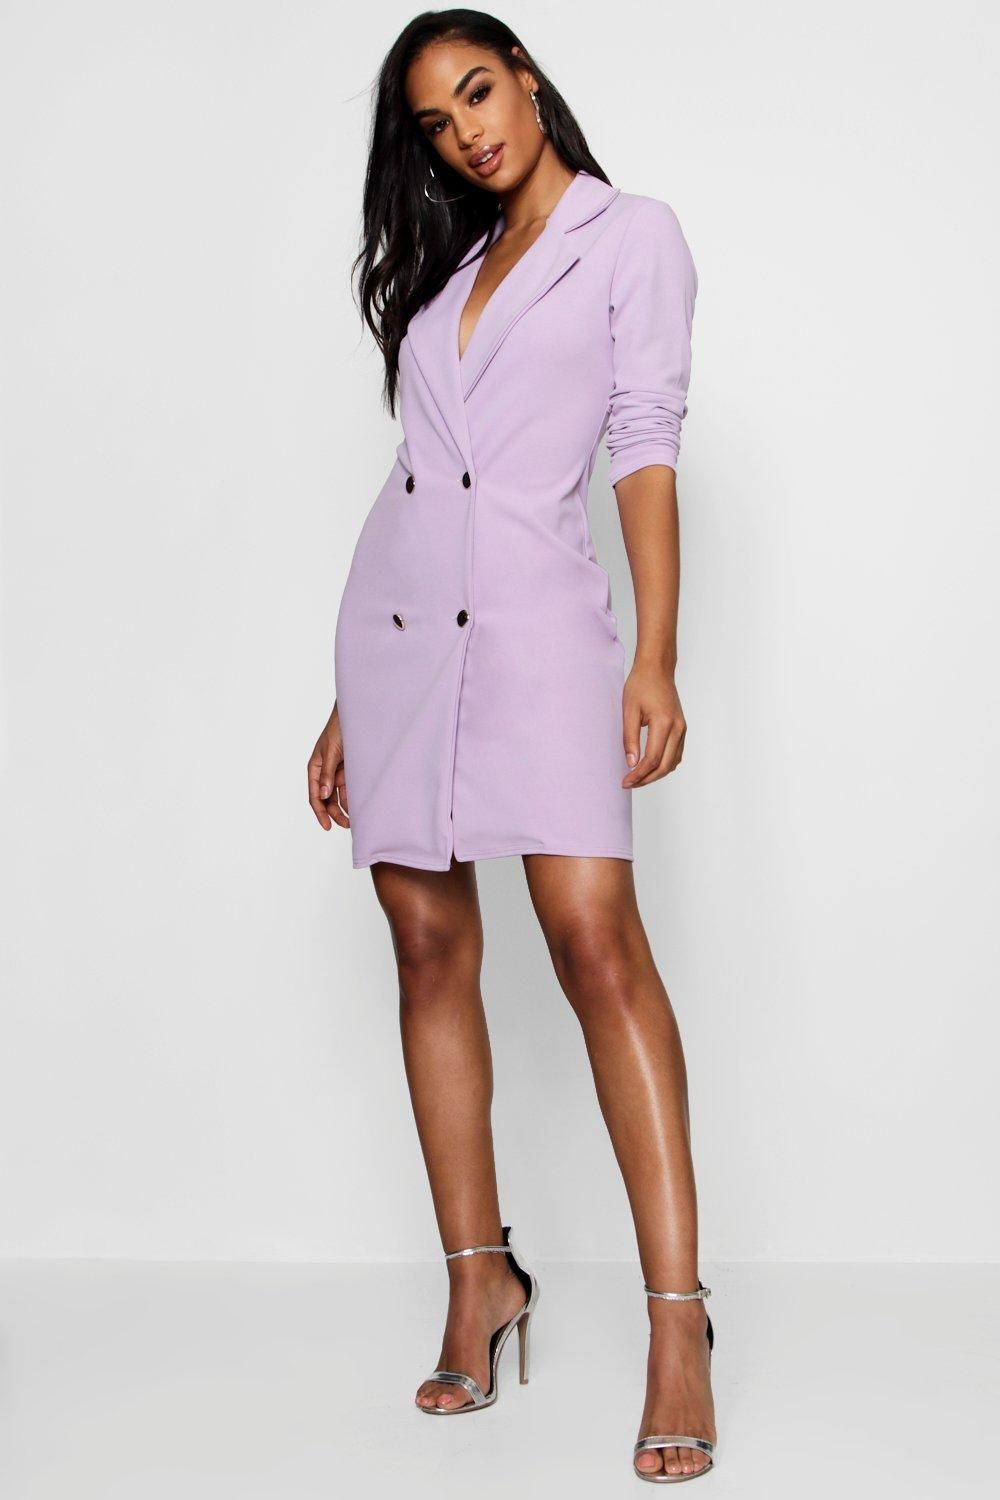 2b00ea7b Blazer Dress | Boohoo Price: $22 Estimated Delivery Aug 22, 2018 Website:  www.boohoo.com Comment: I bought it today and I don't regret it even though  I'm so ...